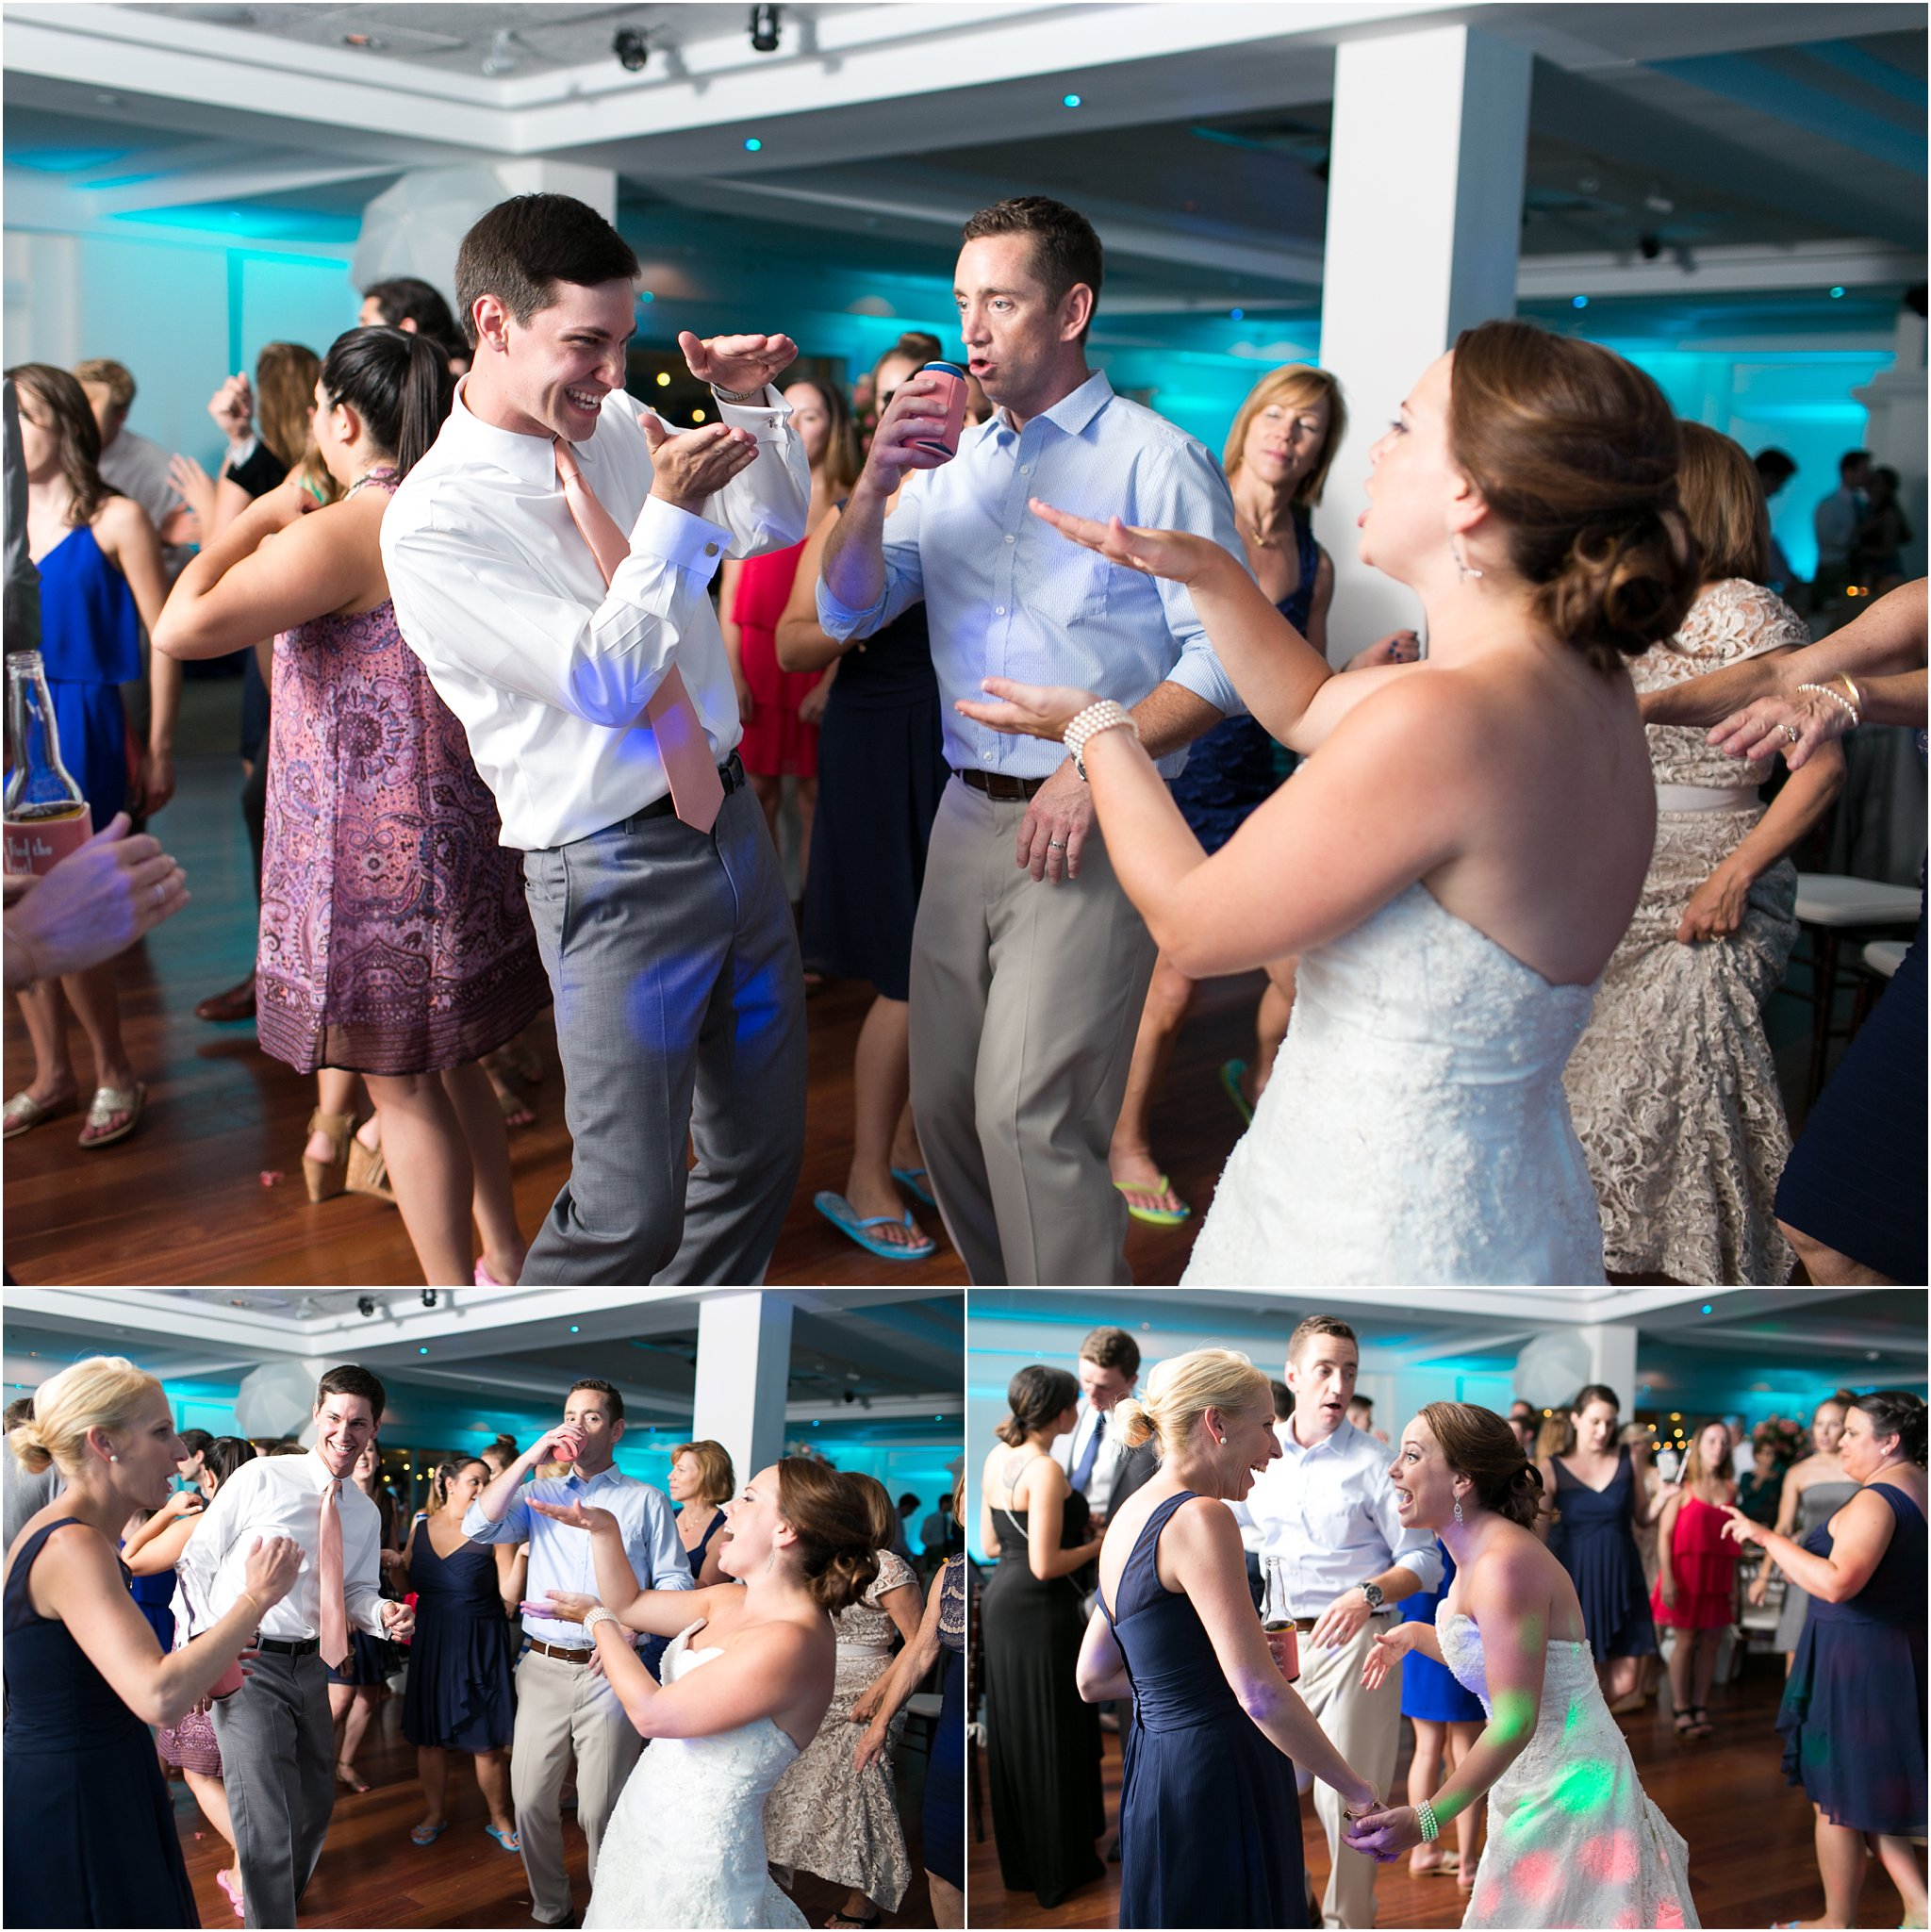 jessica_ryan_photography_wedding_photography_virginiabeach_virginia_candid_authentic_wedding_portraits_marina_shores_yacht_club_chesapeake_bay_1965